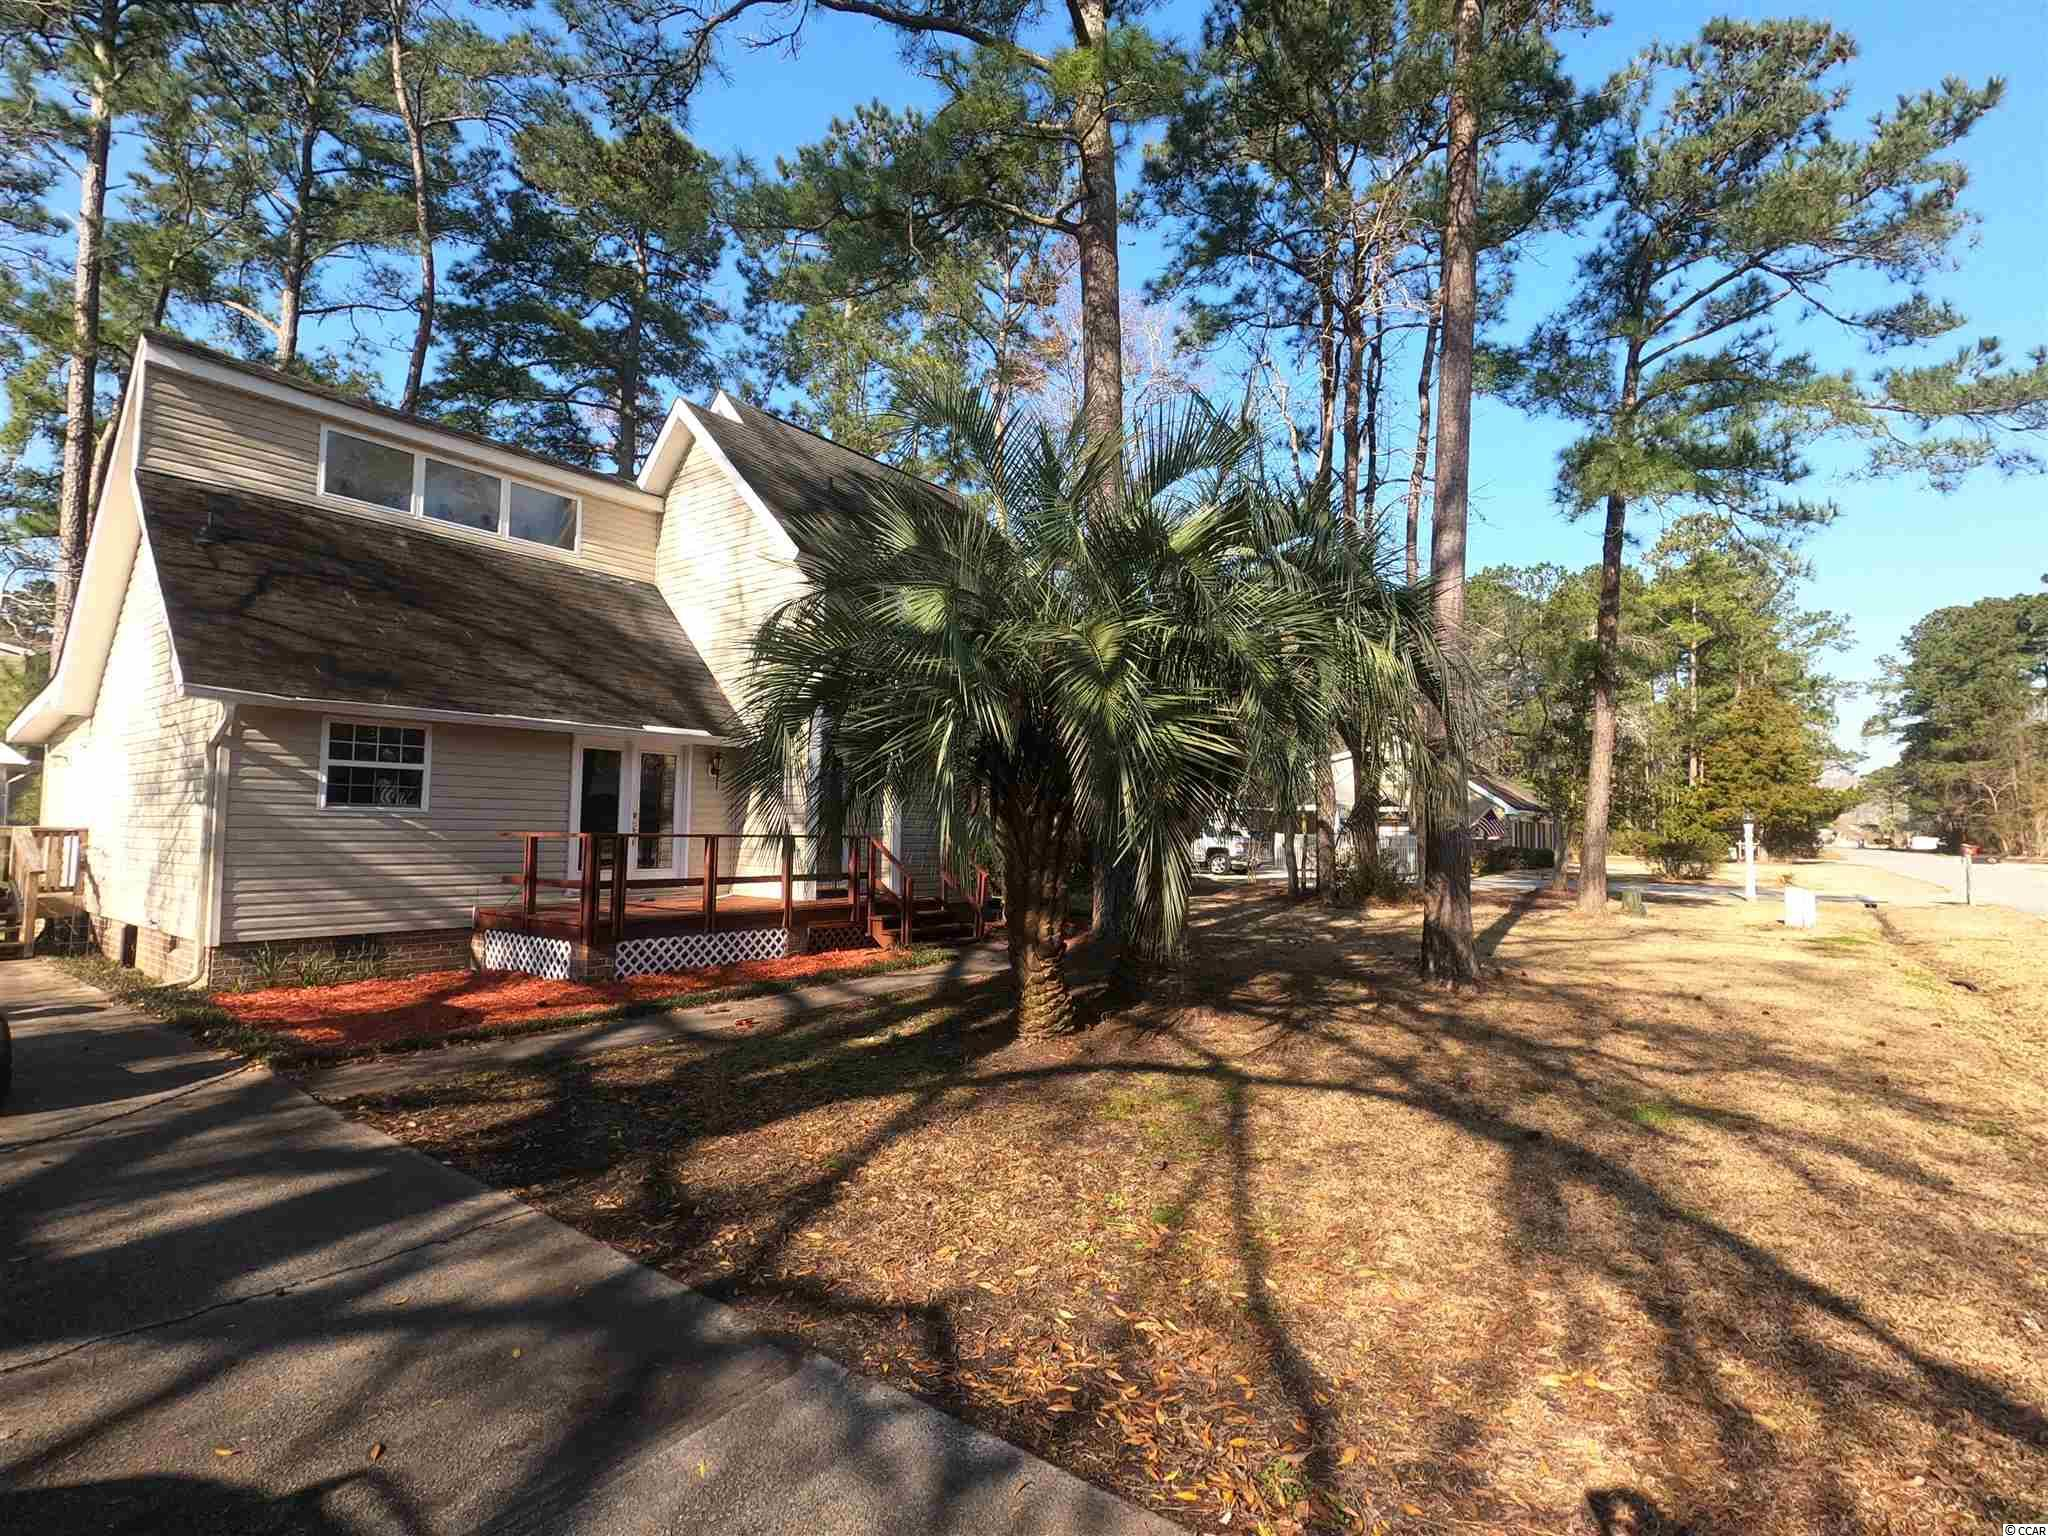 Beautiful renovated home located in  no HOA community! Master bedroom downstairs with a huge sitting area the could easily be converted into a 4th bedroom.  2 bedrooms and full bath upstairs.  come and view this beautiful home today!  RV and Boat parking allowed.